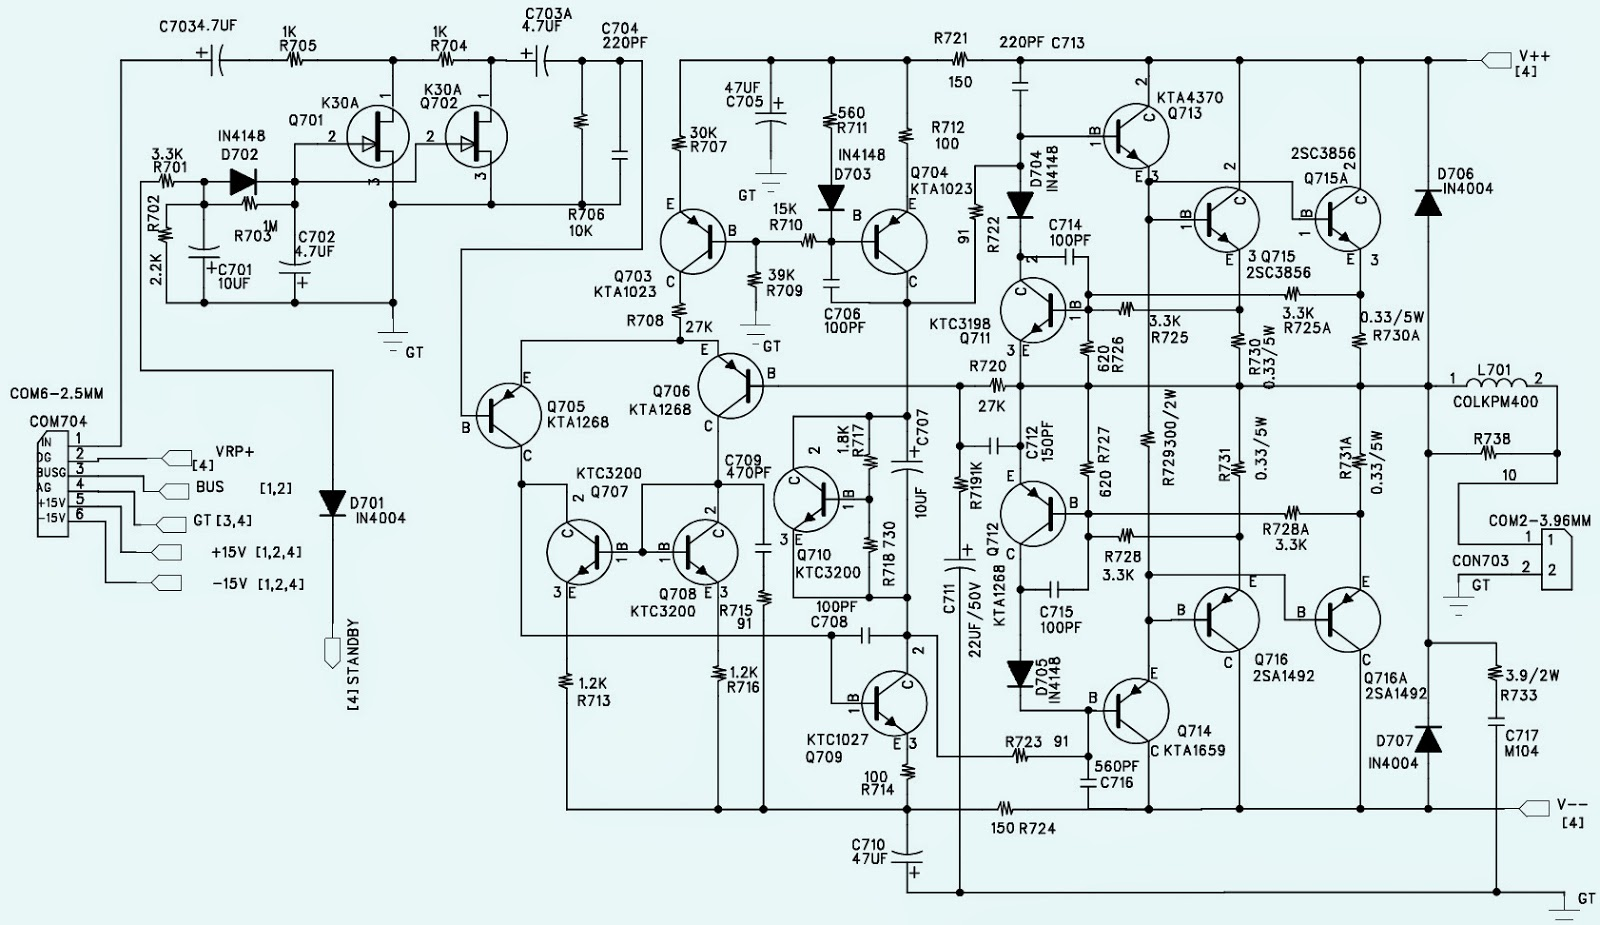 lifier For Paralelling Headphone besides Voltage Controlled Oscillator besides Wharfedale Pro Pm 600 Schematic likewise Phono Pre  Schematic in addition Dtmf Based Cellphone Controlled Home. on audio tone control circuit diagram